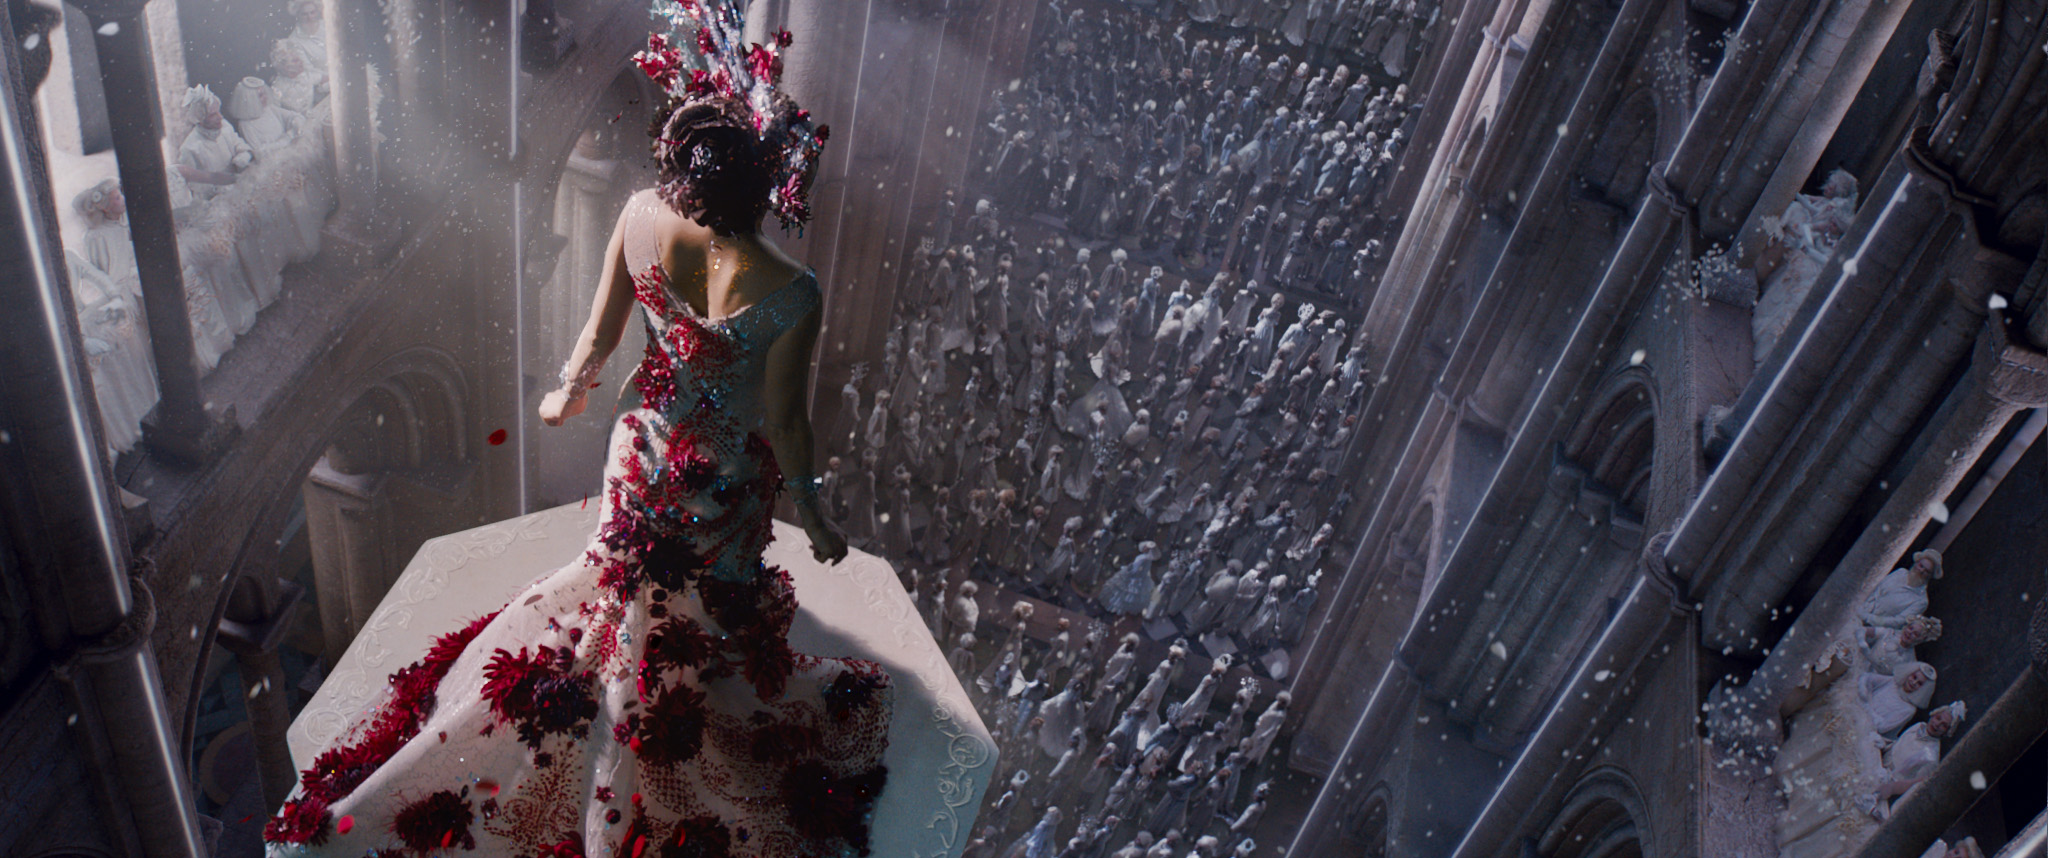 Let's Talk About...'Jupiter Ascending'